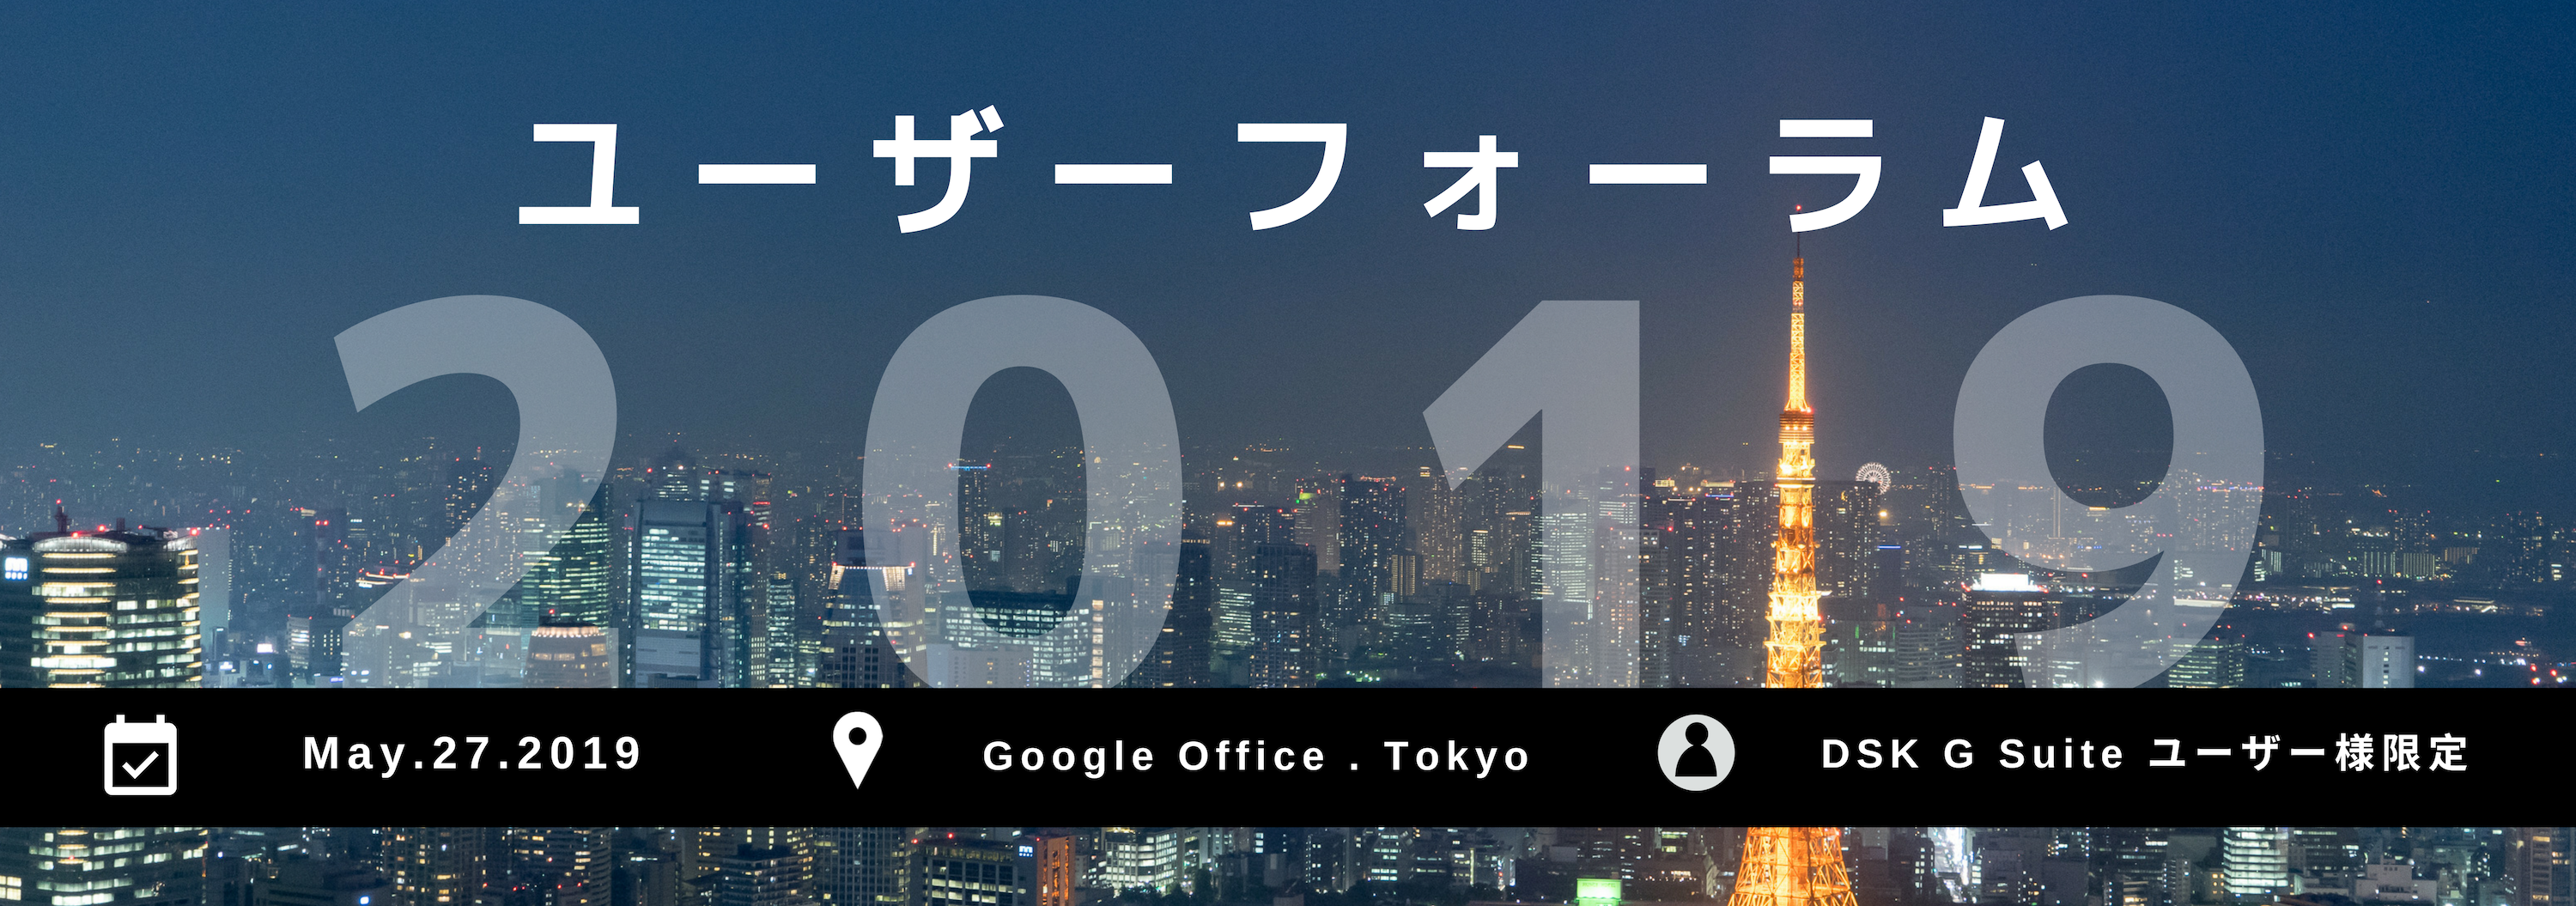 G Suite ユーザーフォーラム 2019